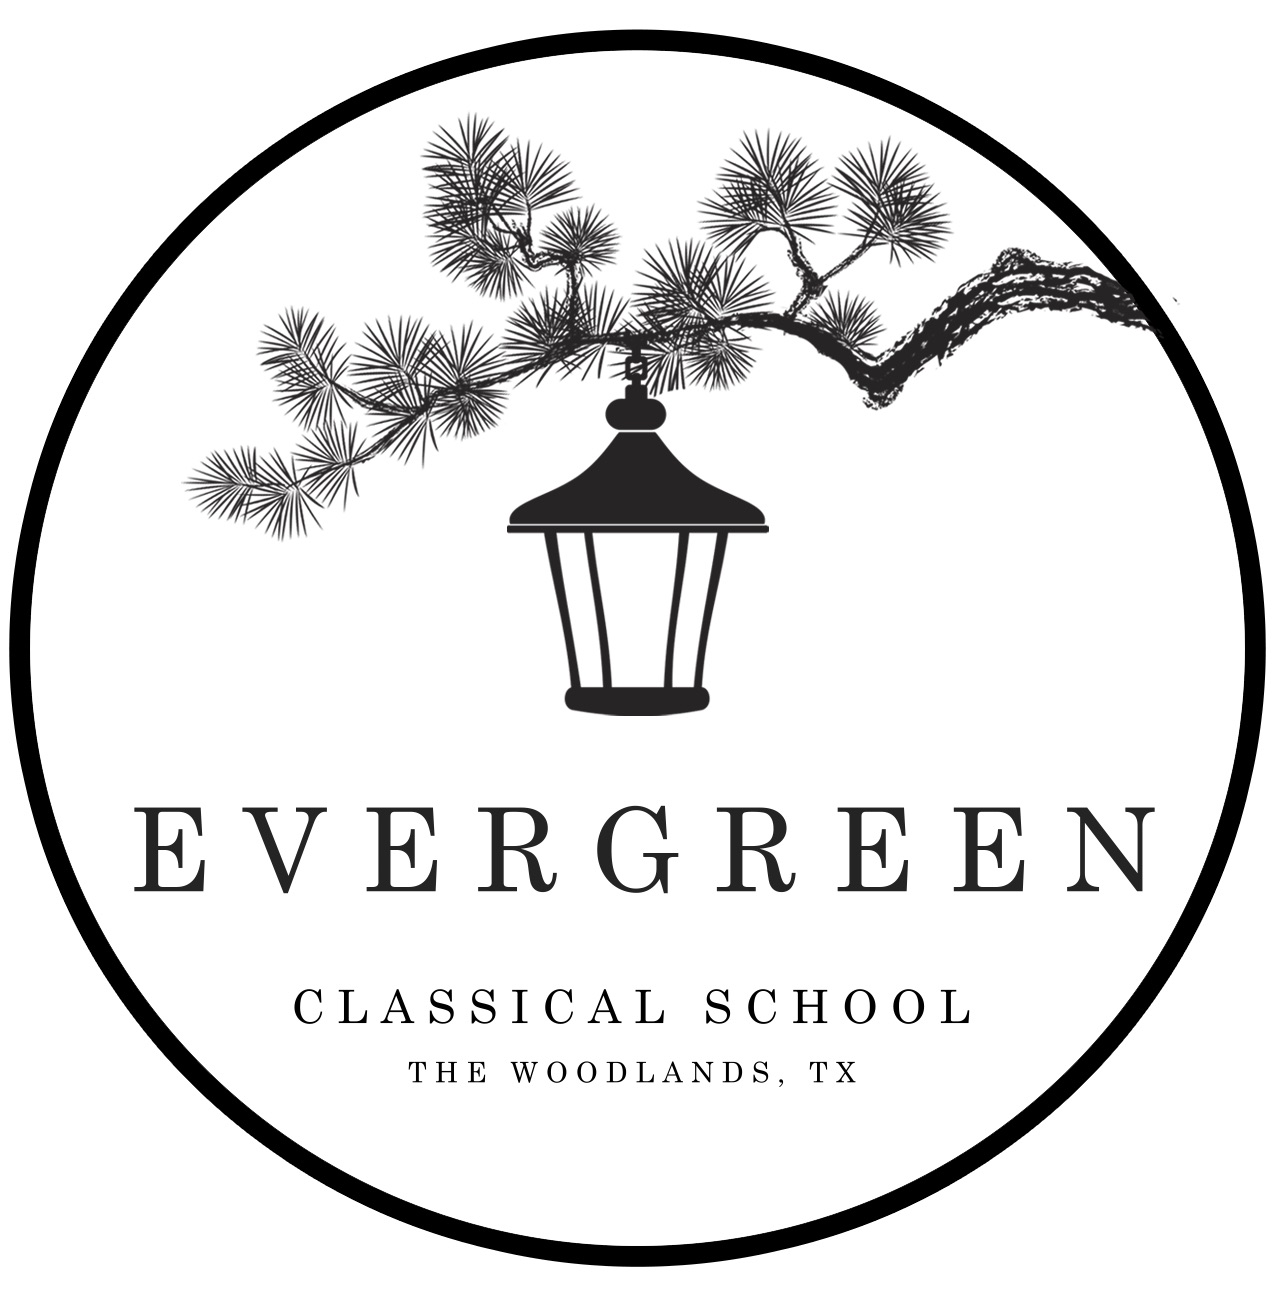 Evergreen Classical School